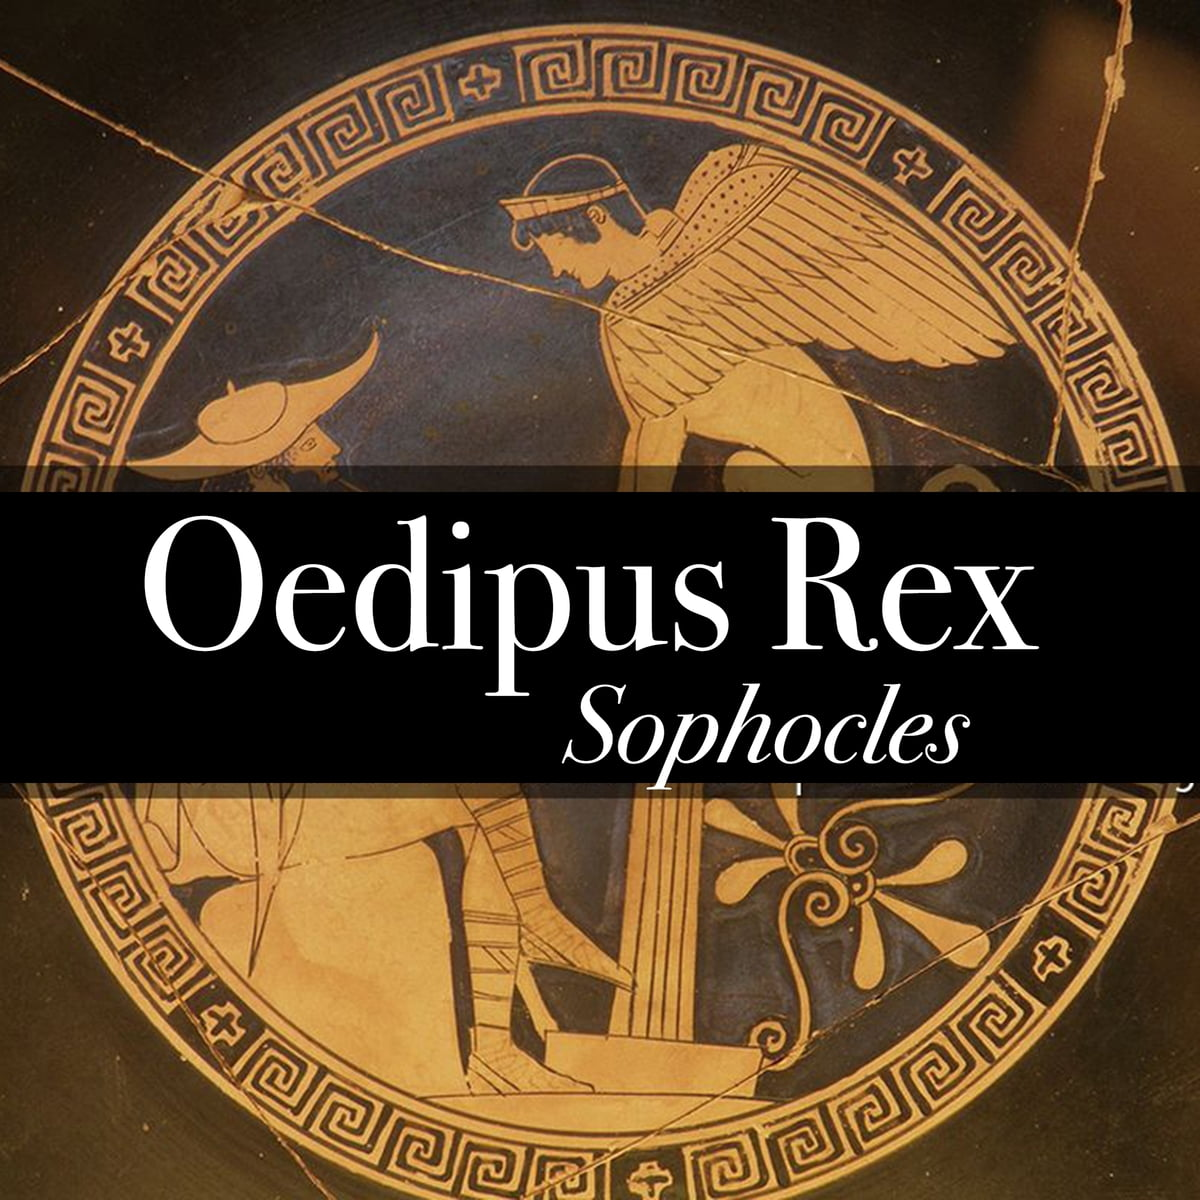 is oedipus the king the same as oedipus rex